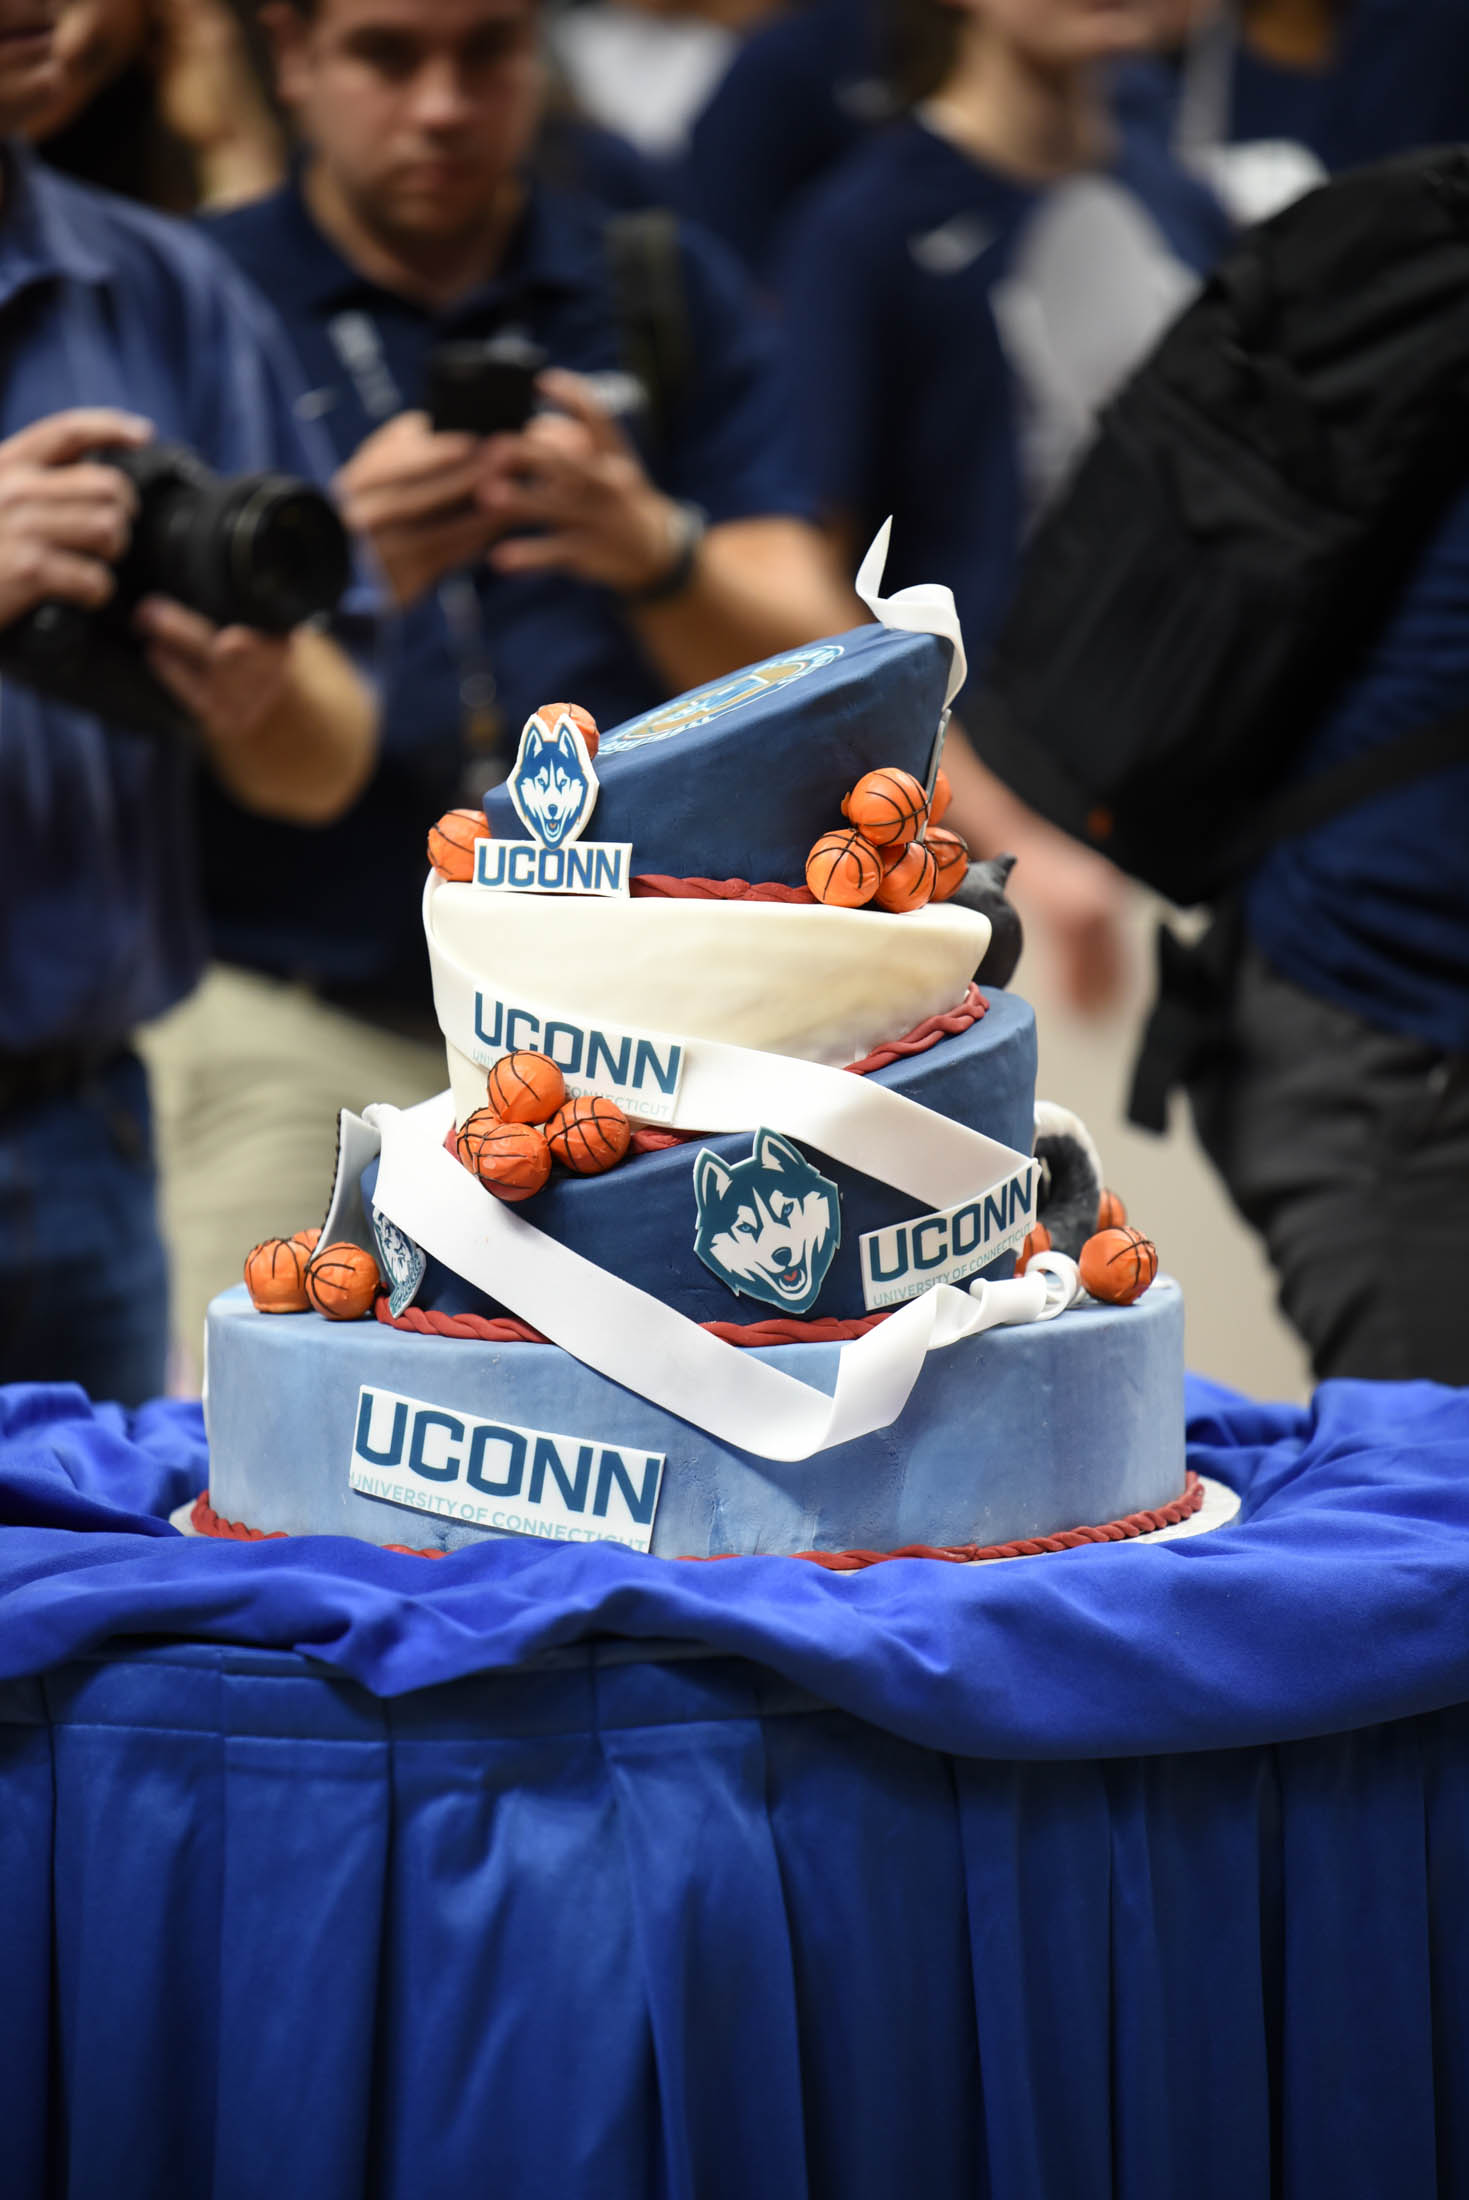 The ceremony included a UConn decorated cake. (Charlotte Lao/The Daily Campus)